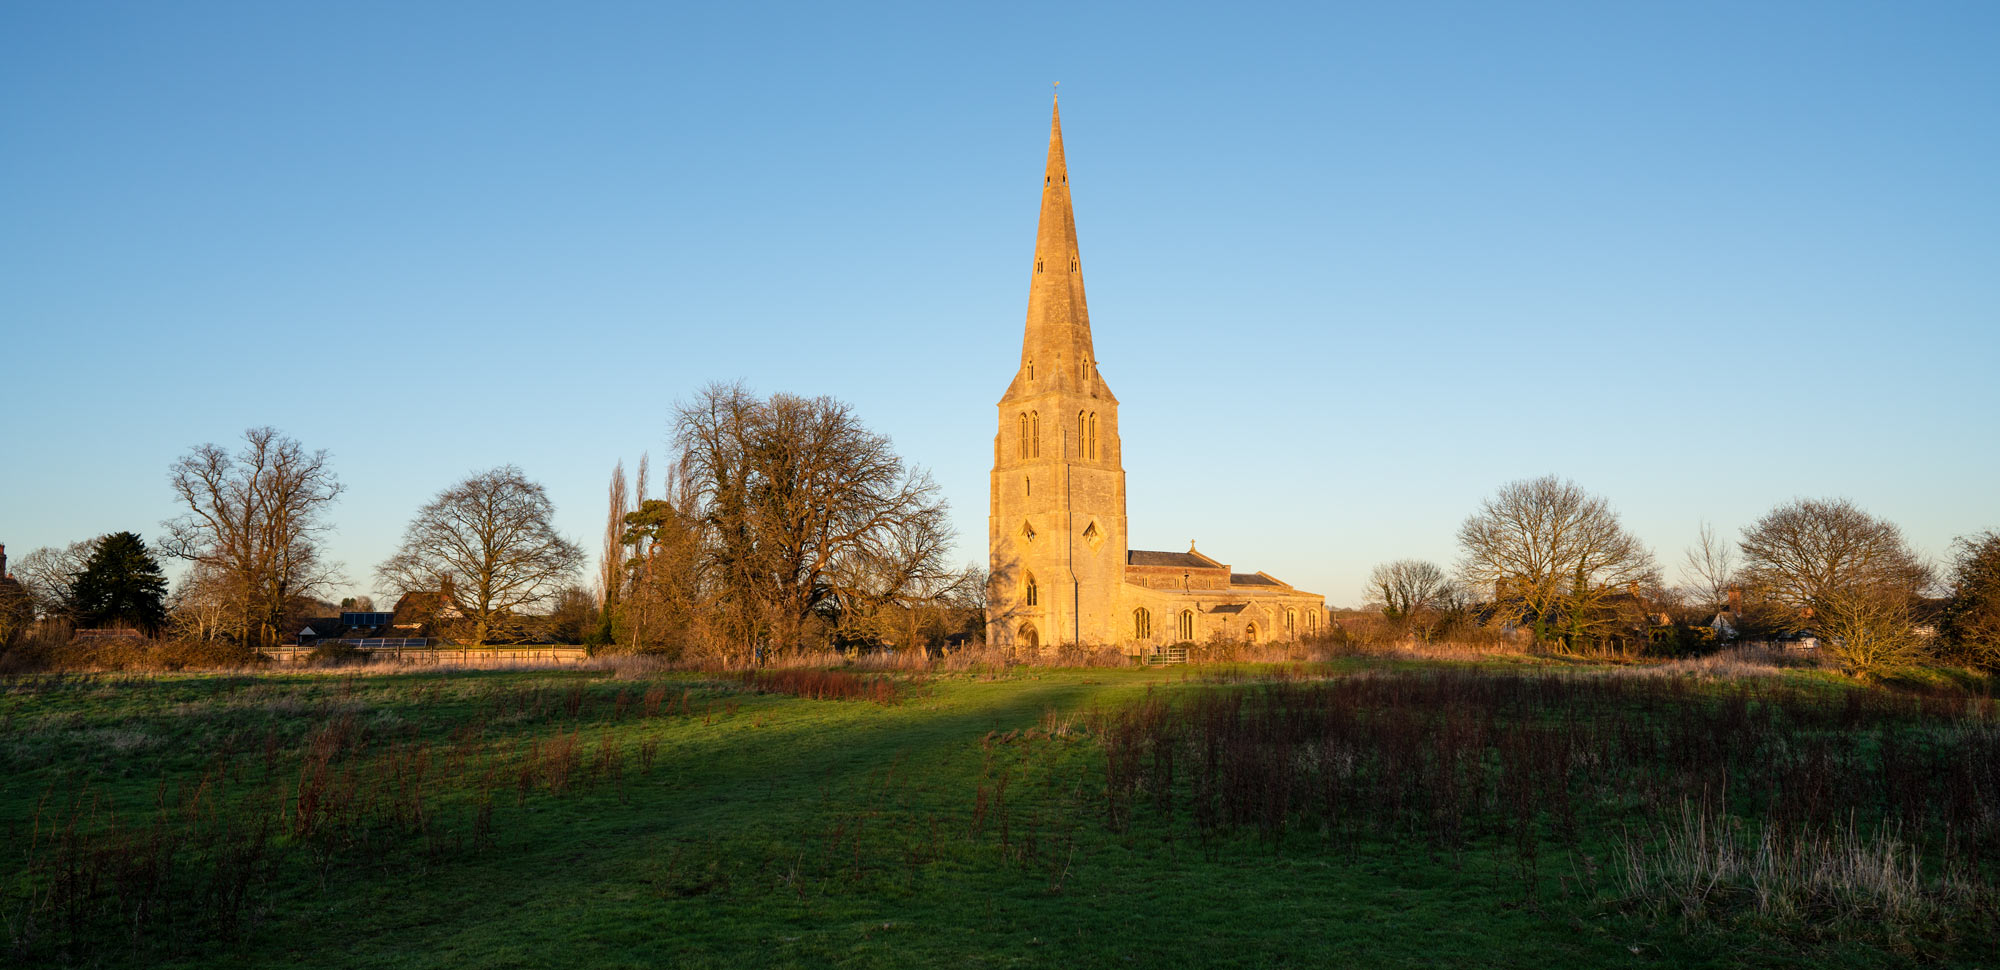 Spaldwick Church